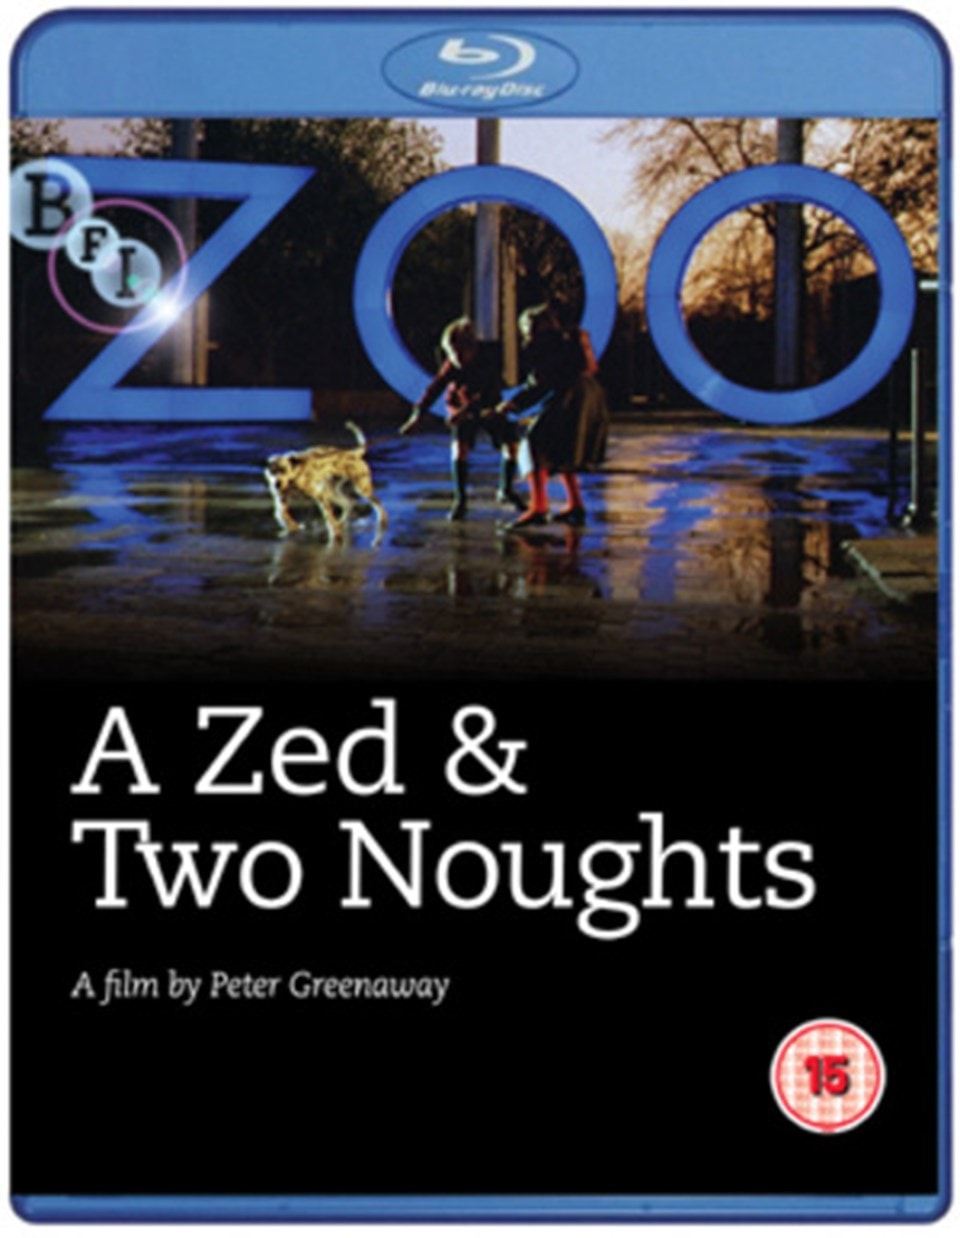 A Zed and Two Noughts - 1